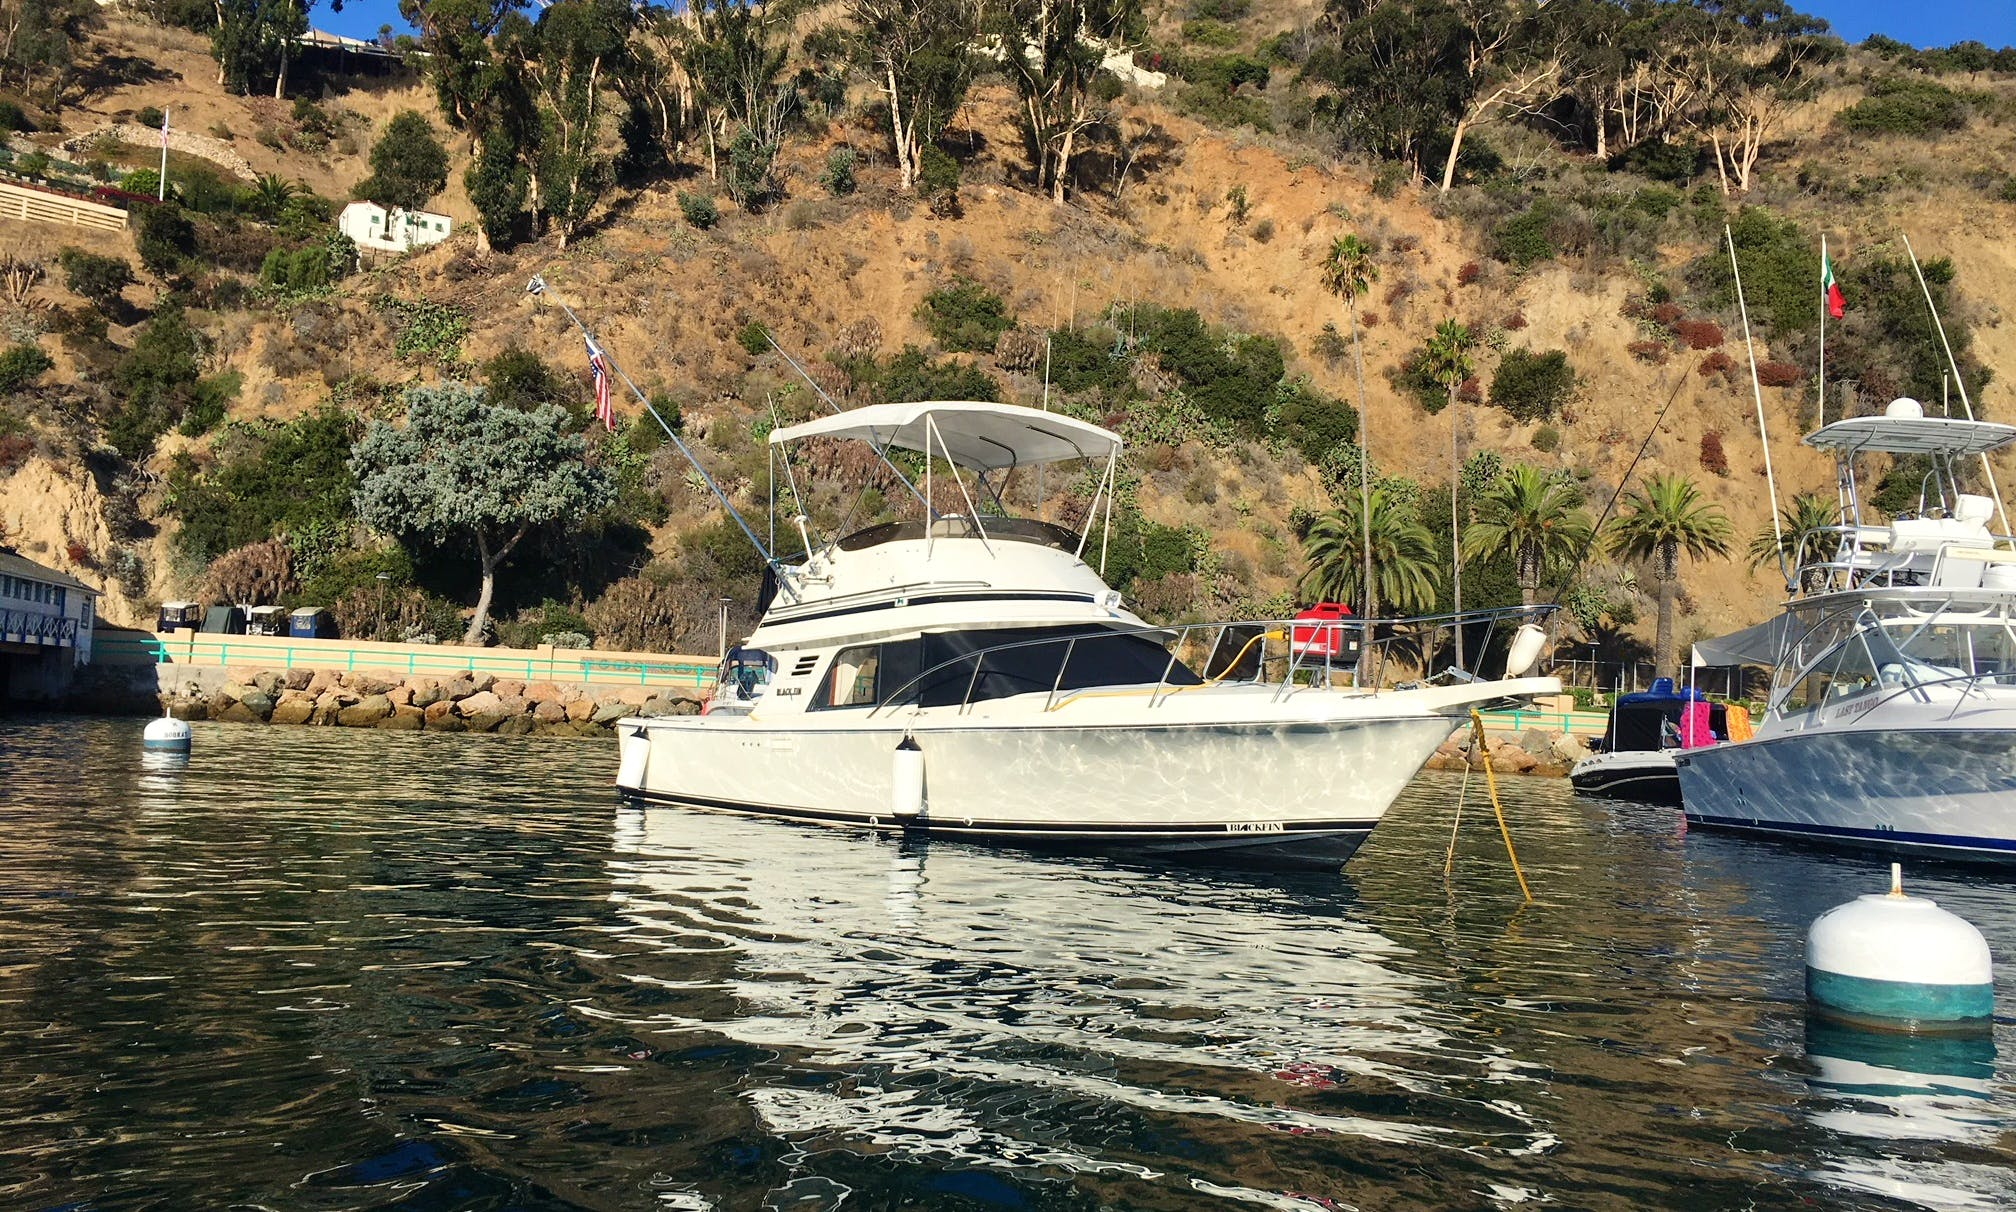 Captained Blackfin 29' (32' Overall) Classic in Newport Beach